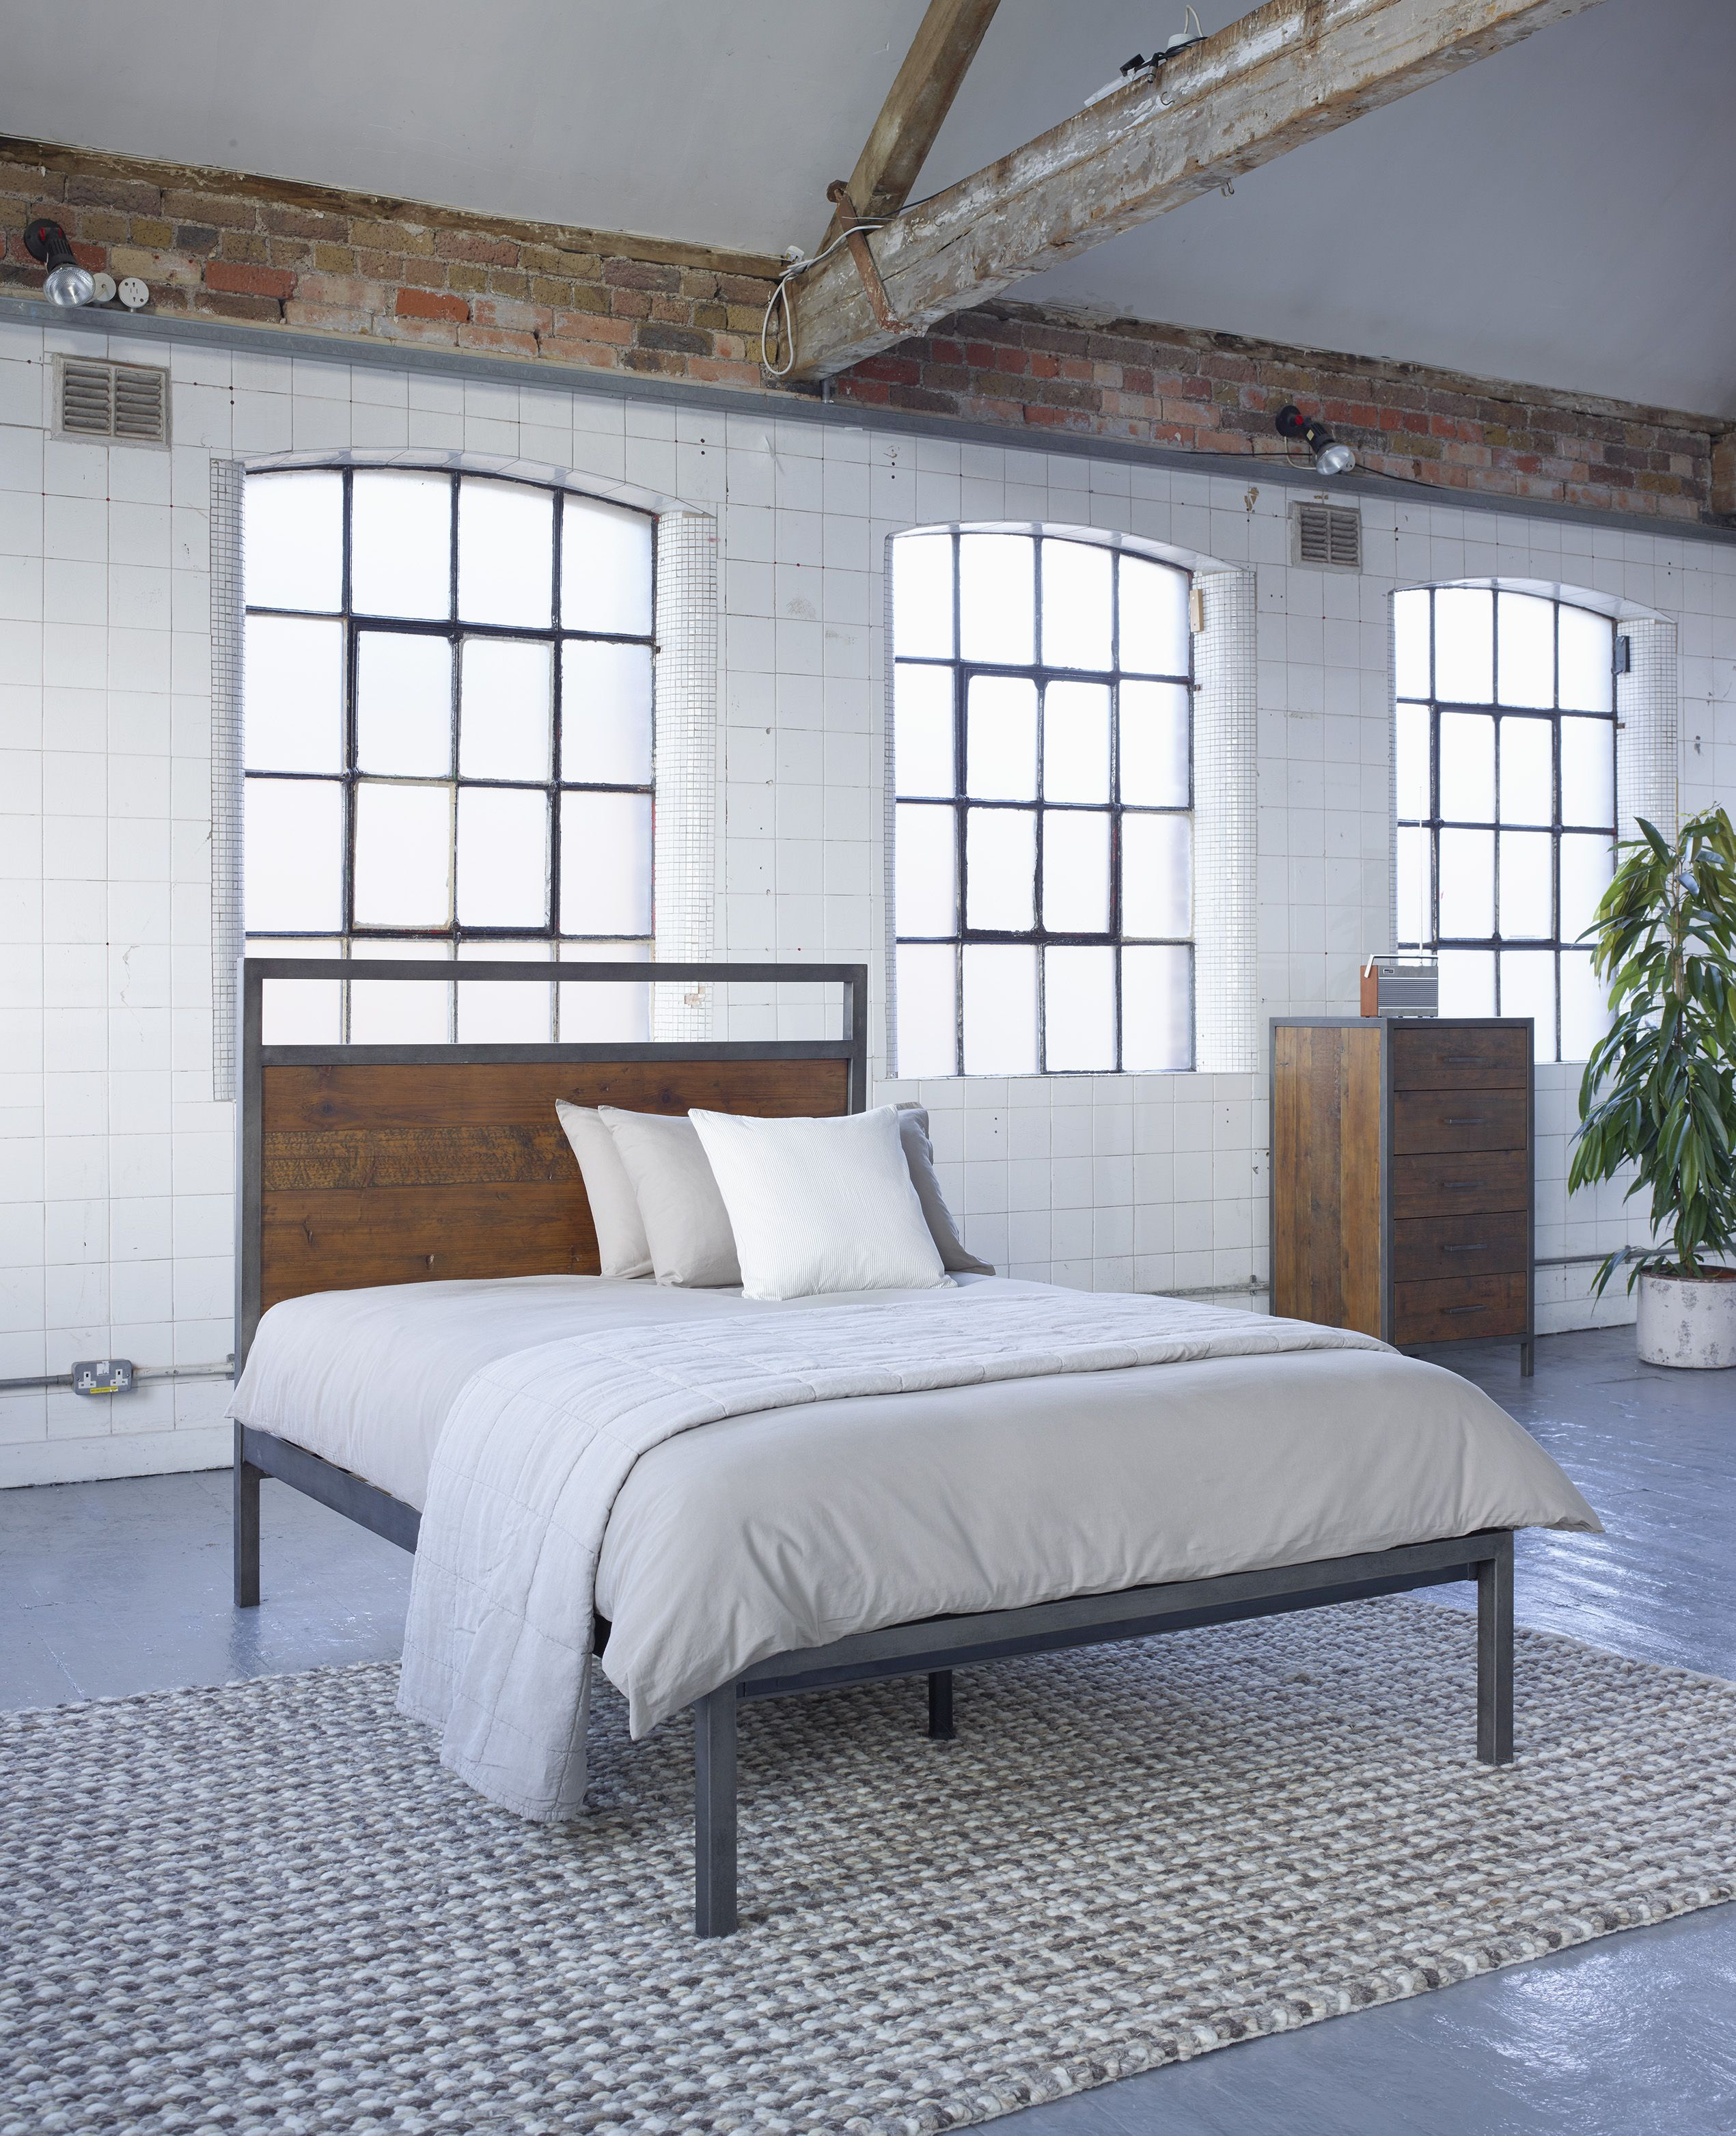 industrial style bedroom furniture. baxter square bed - industrial warehouse vintage style bedroom furniture from lombok e